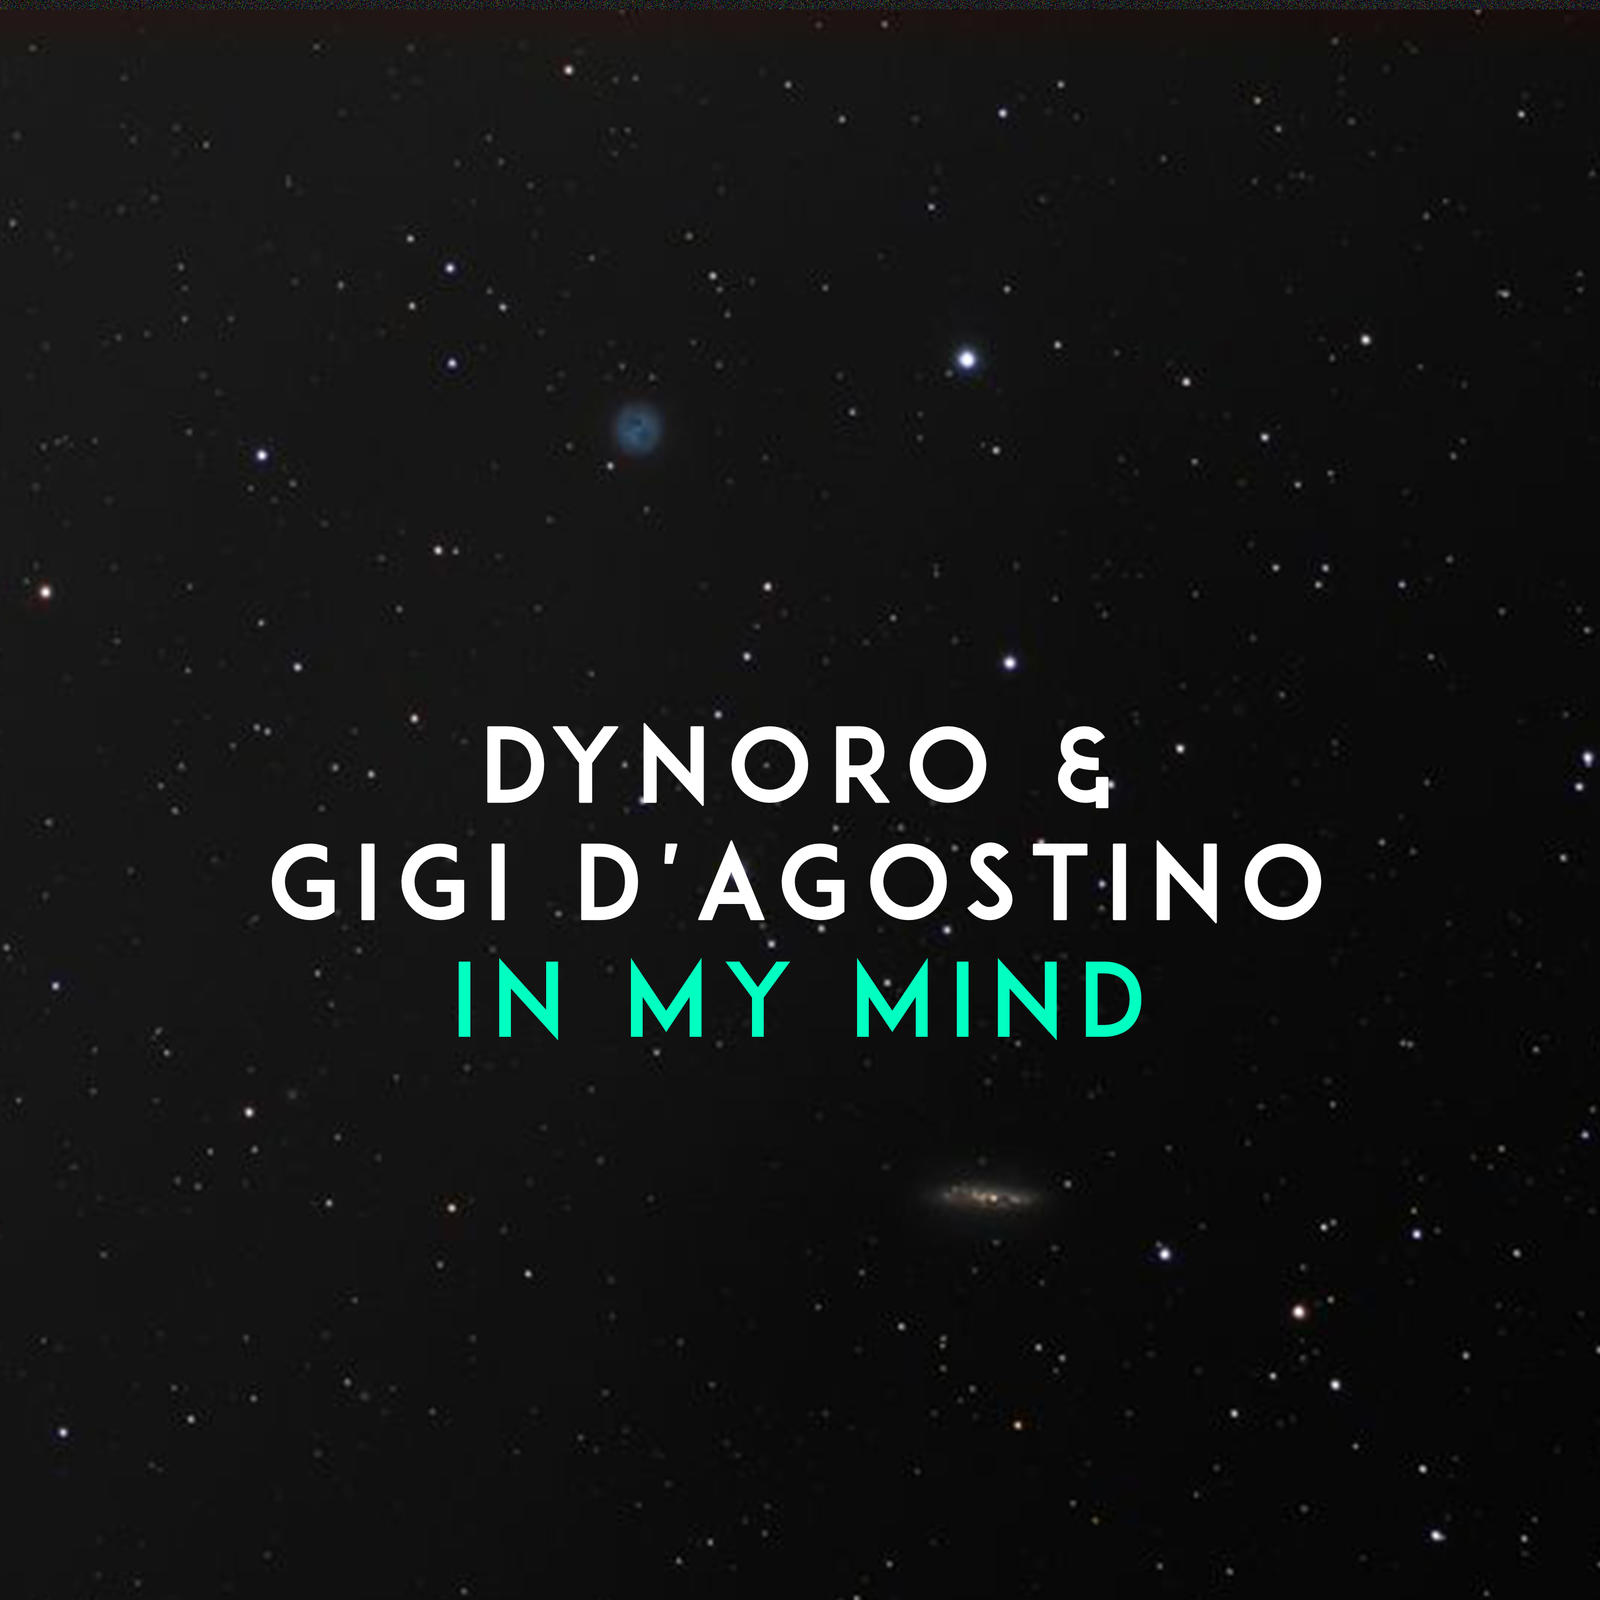 DYNORO & GIGI D`AGOSTINO - IN MY MIND